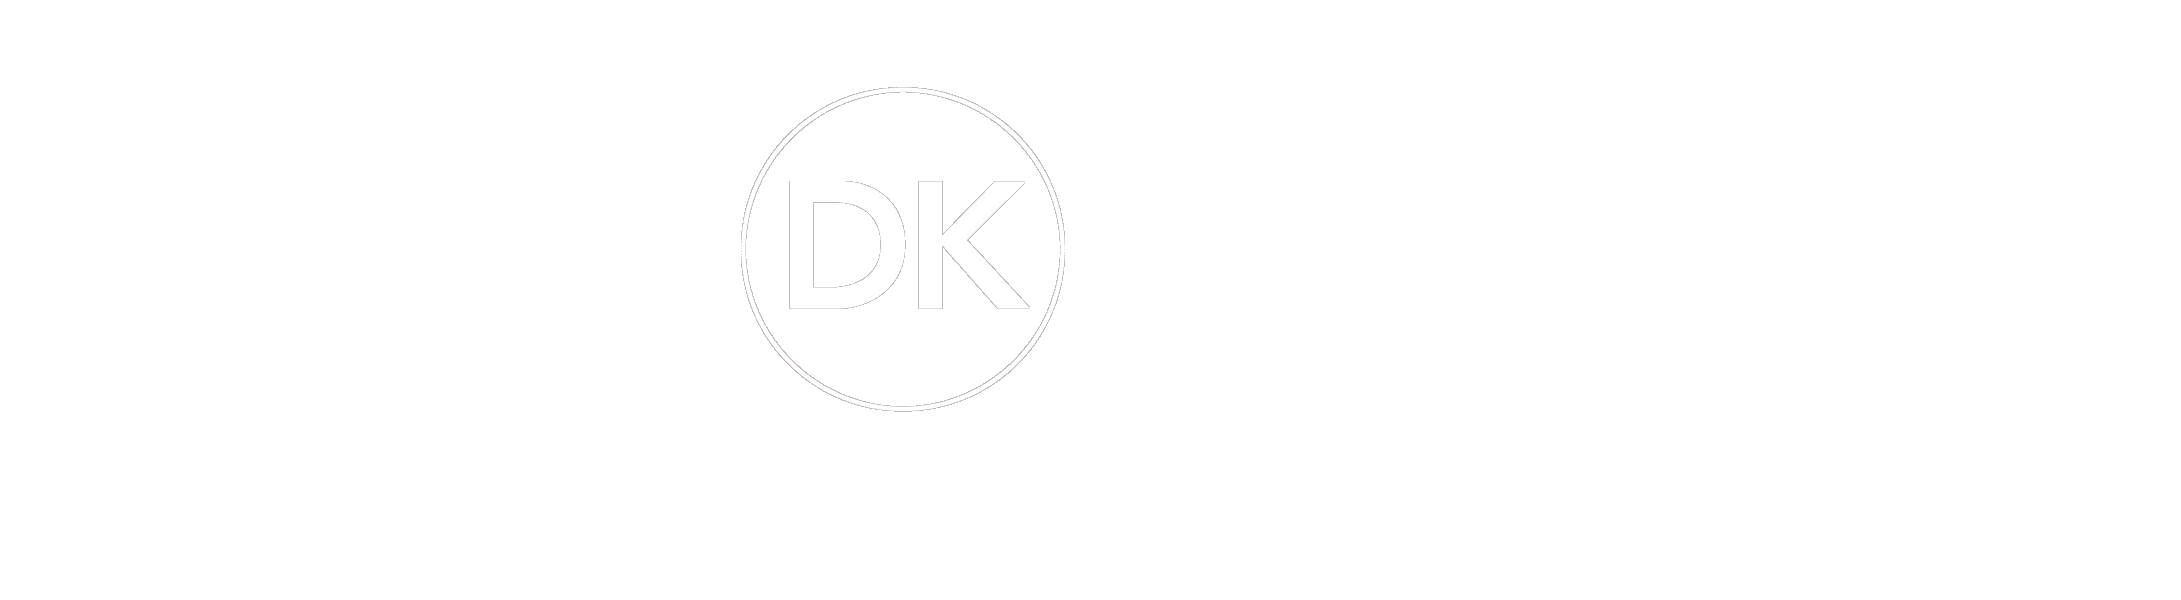 distasio-and-kowalski-logo-reverse